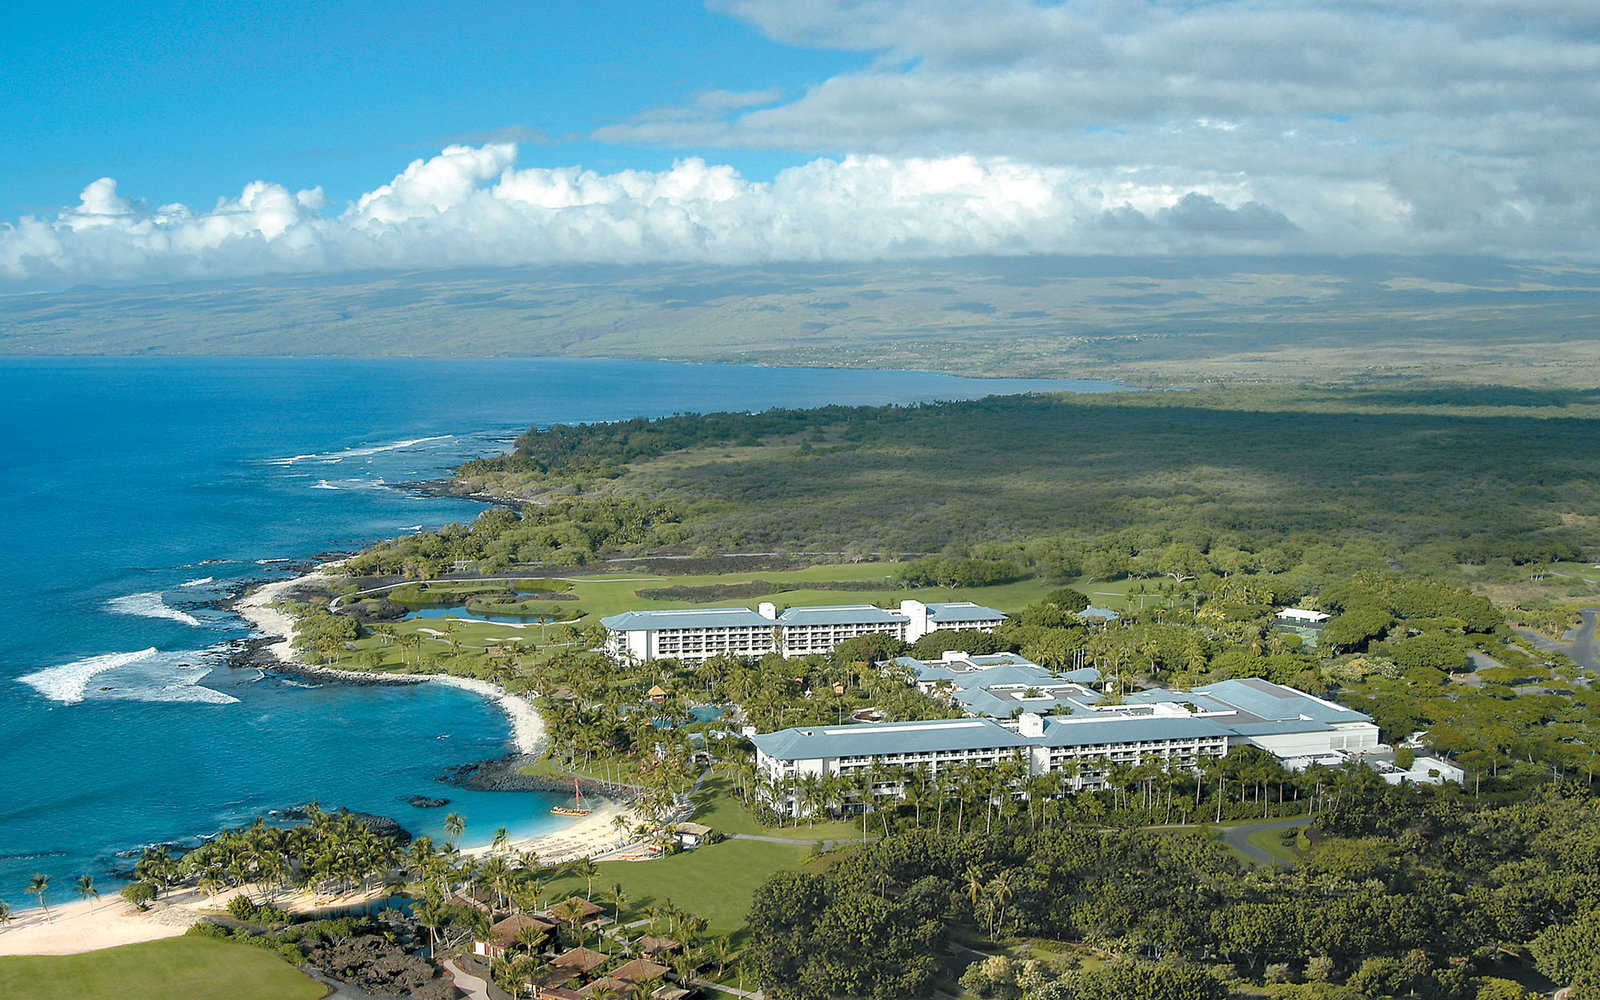 No. 12: The Fairmont Orchid